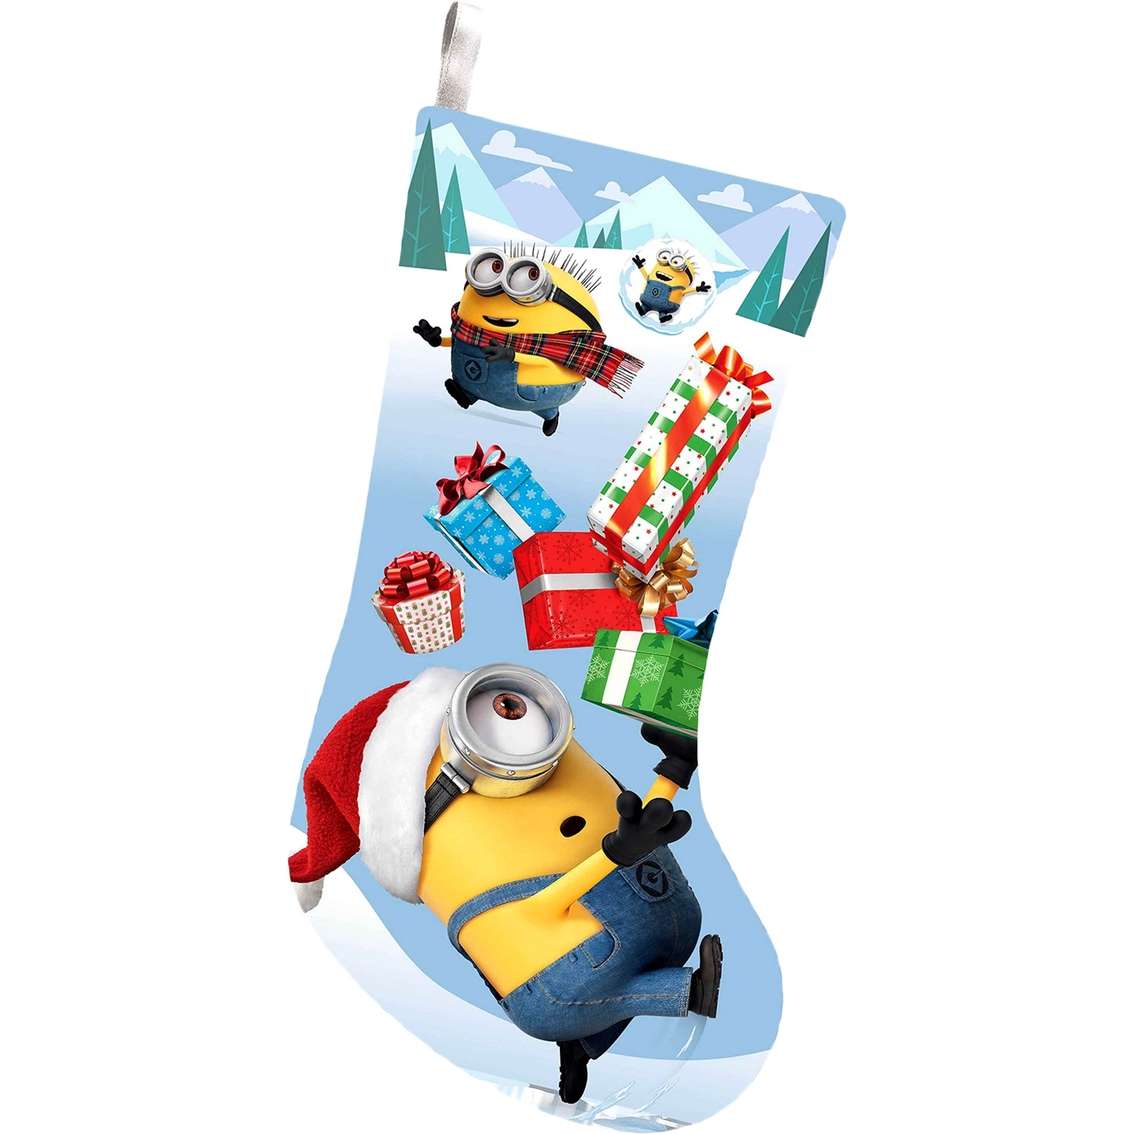 Minion Christmas.Despicable Me Minion Christmas Stocking Hooked On Ornaments